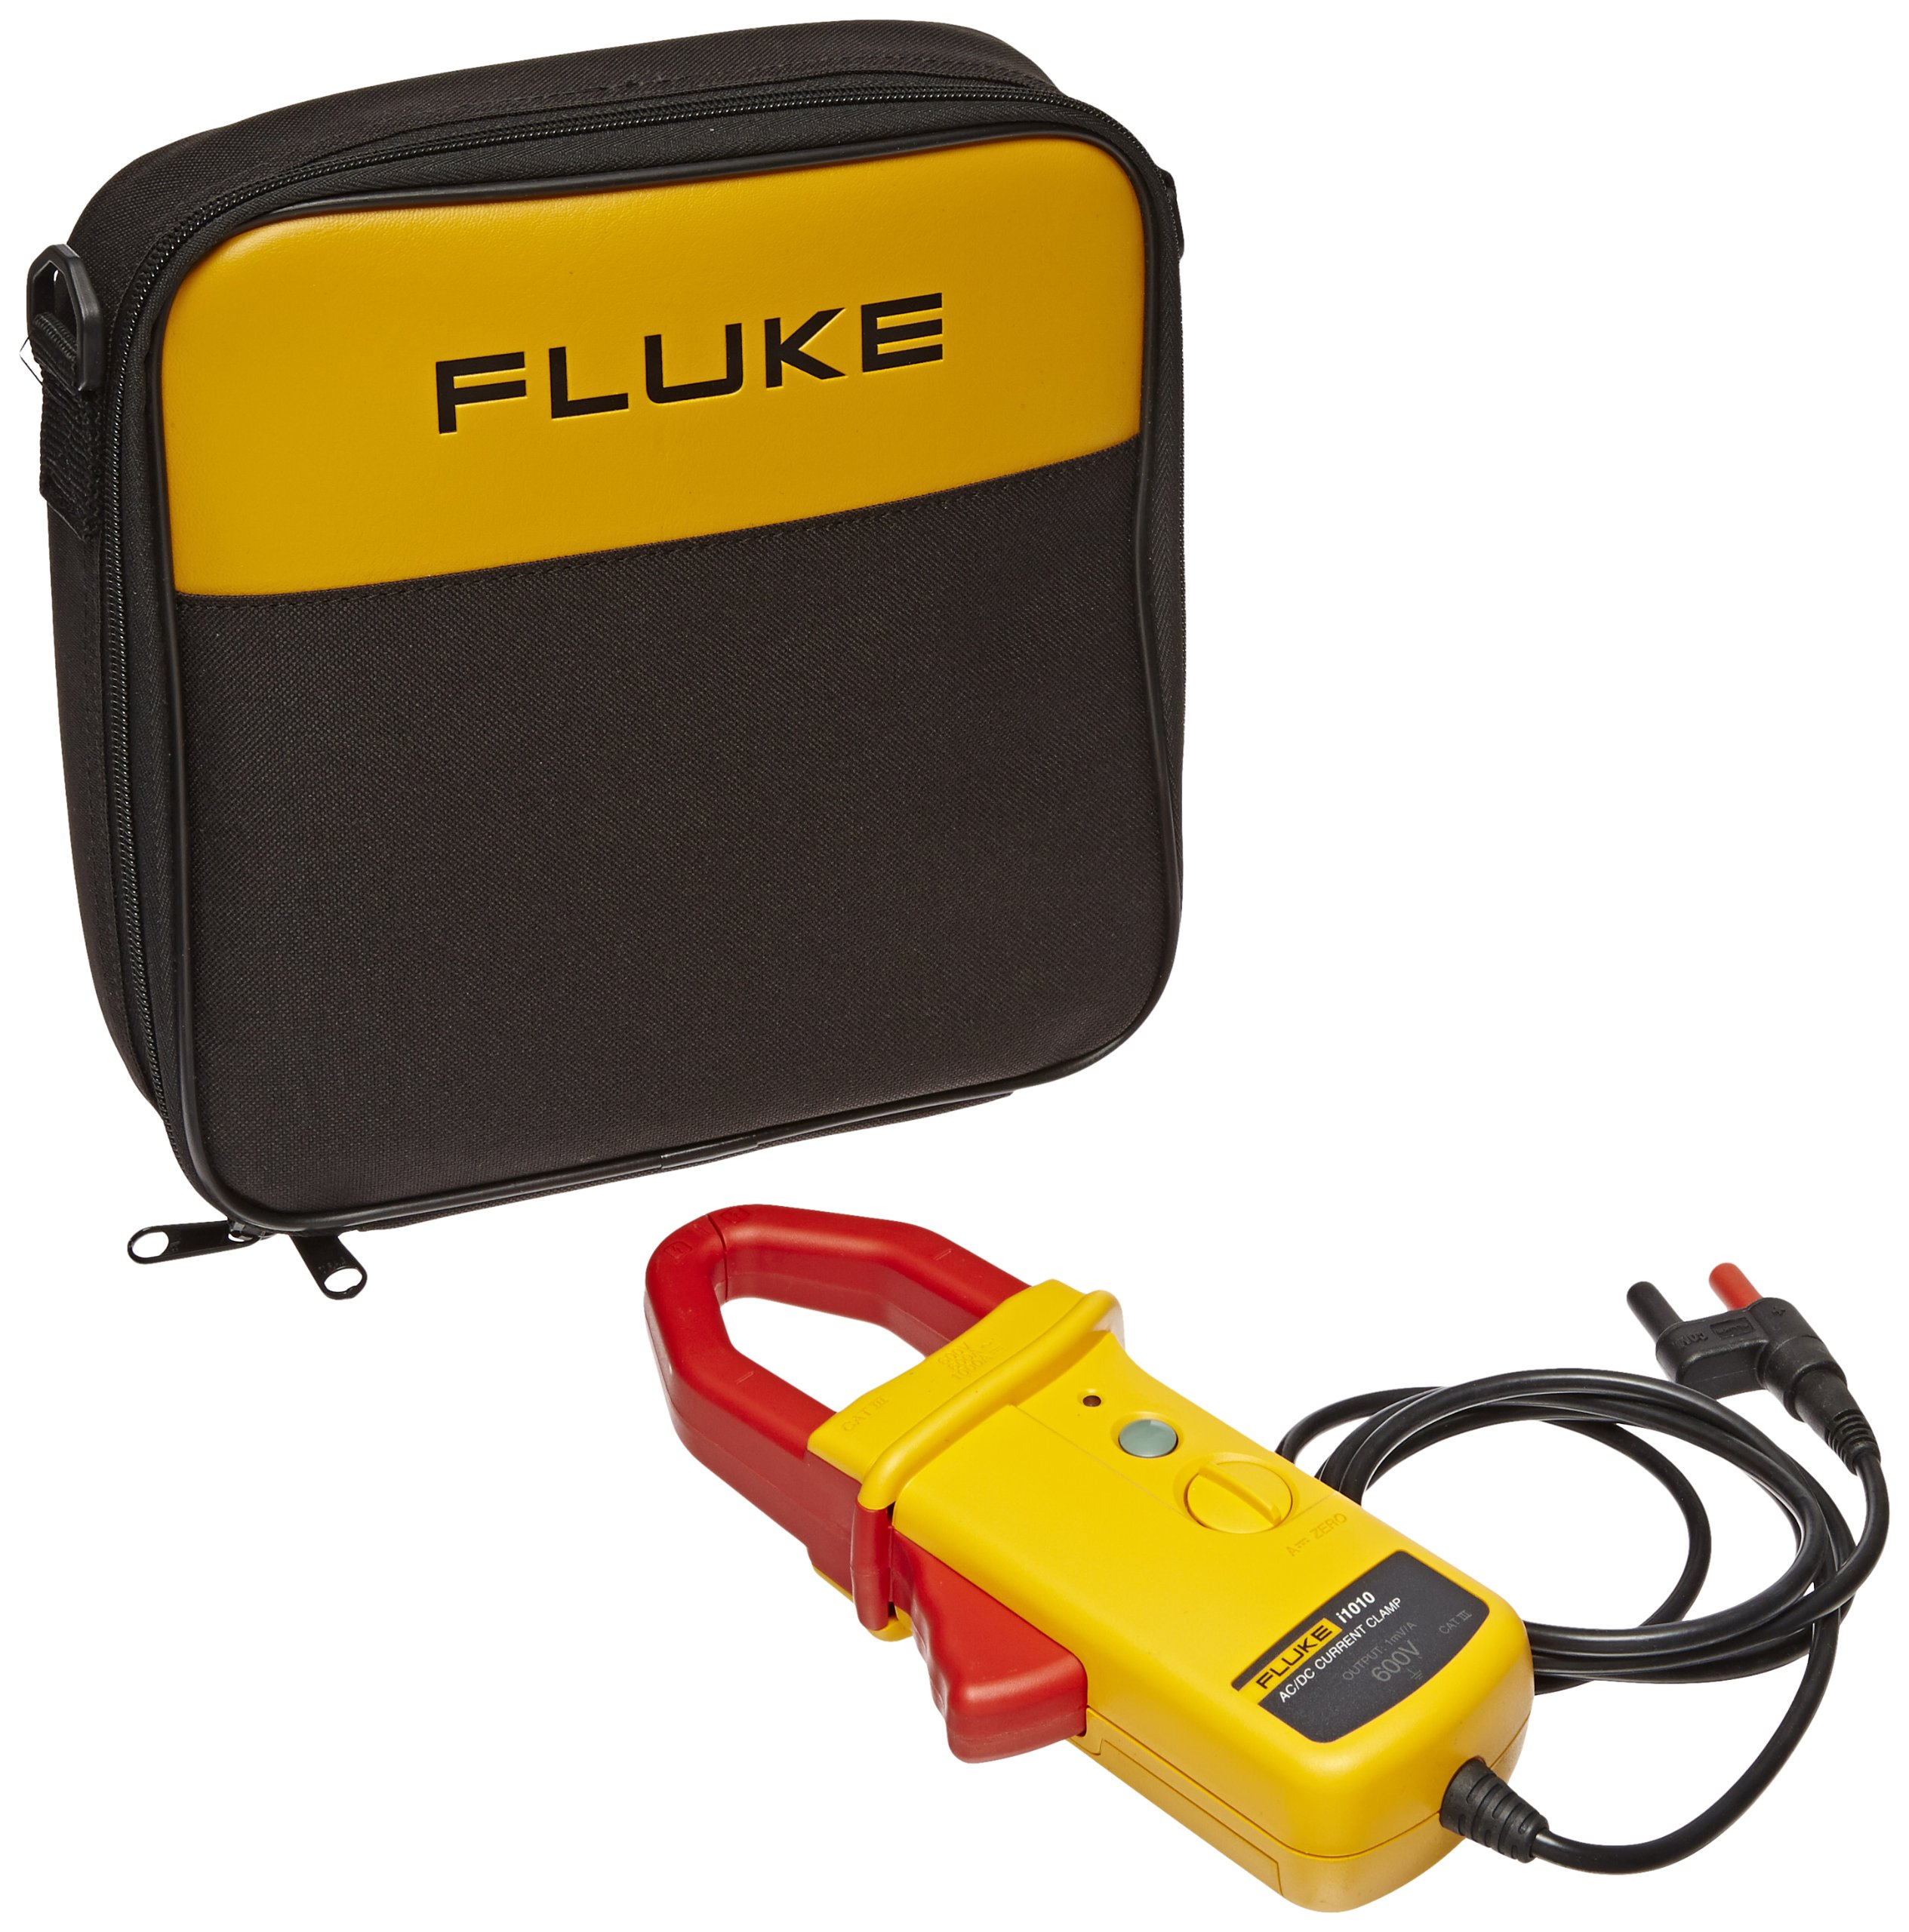 Fluke I1010-KIT AC/DC Current Clamp Kit with Carry Case, 600V Voltage, 600A AC, 1000A DC Current